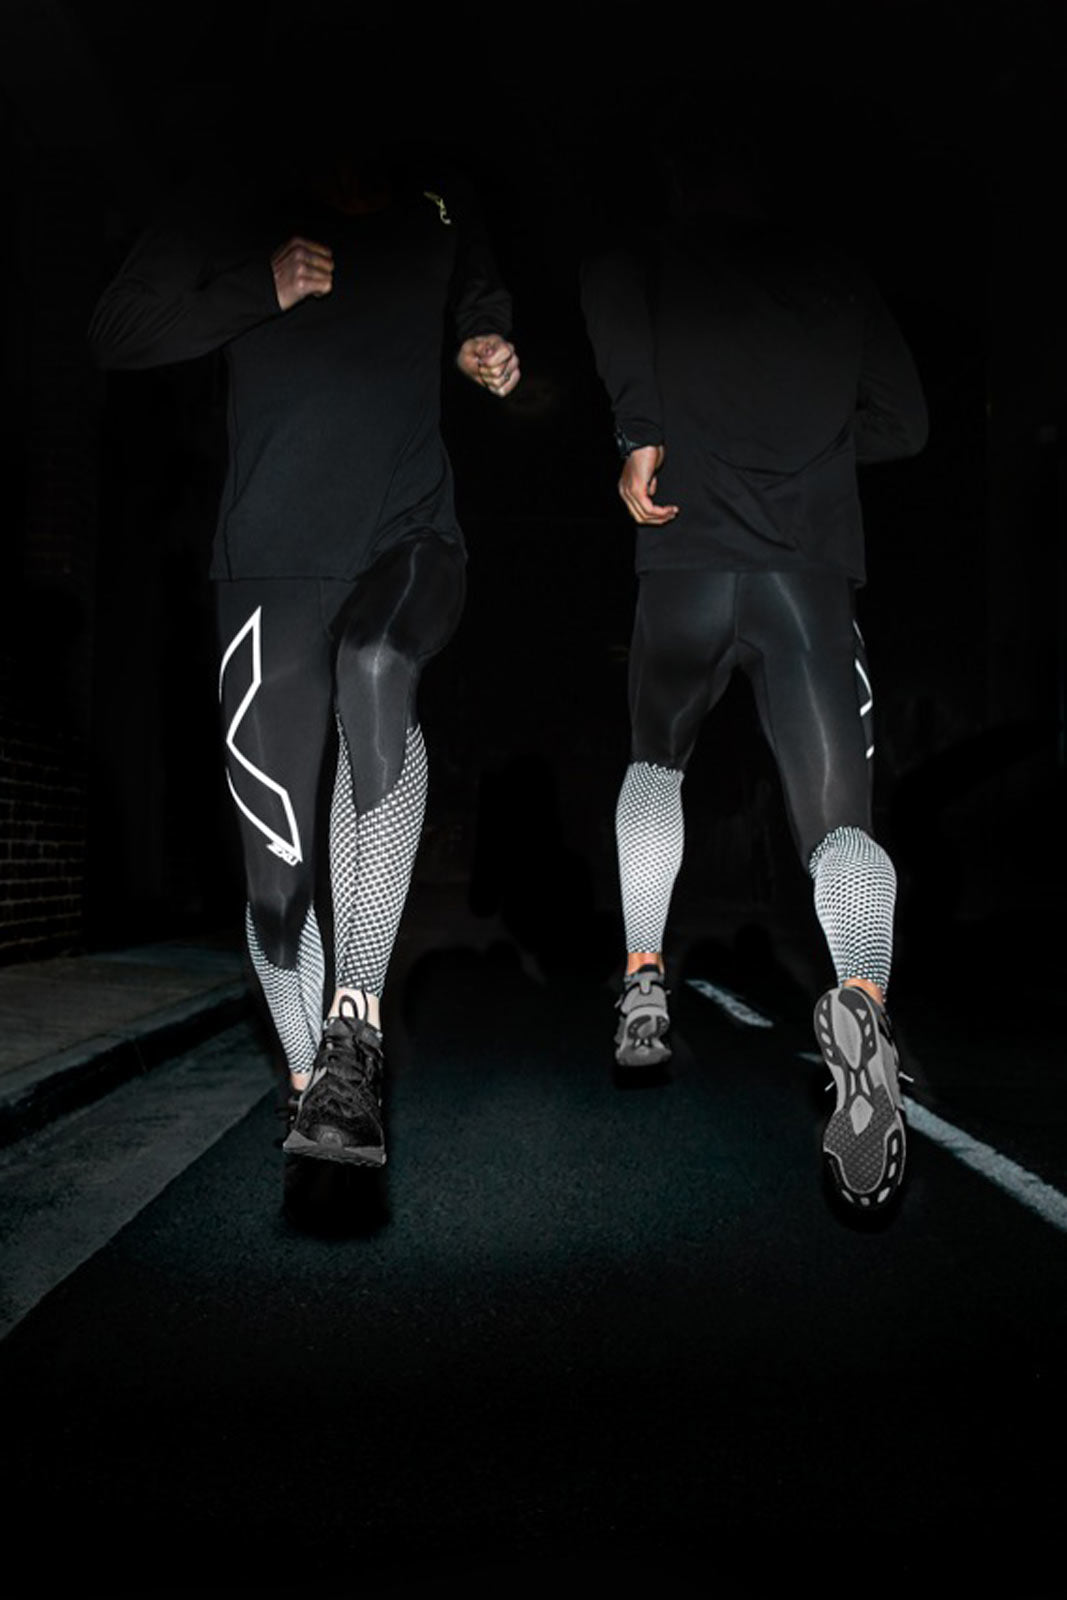 2XU Reflect - Reflective Compression Tights image 5 - The Sports Edit